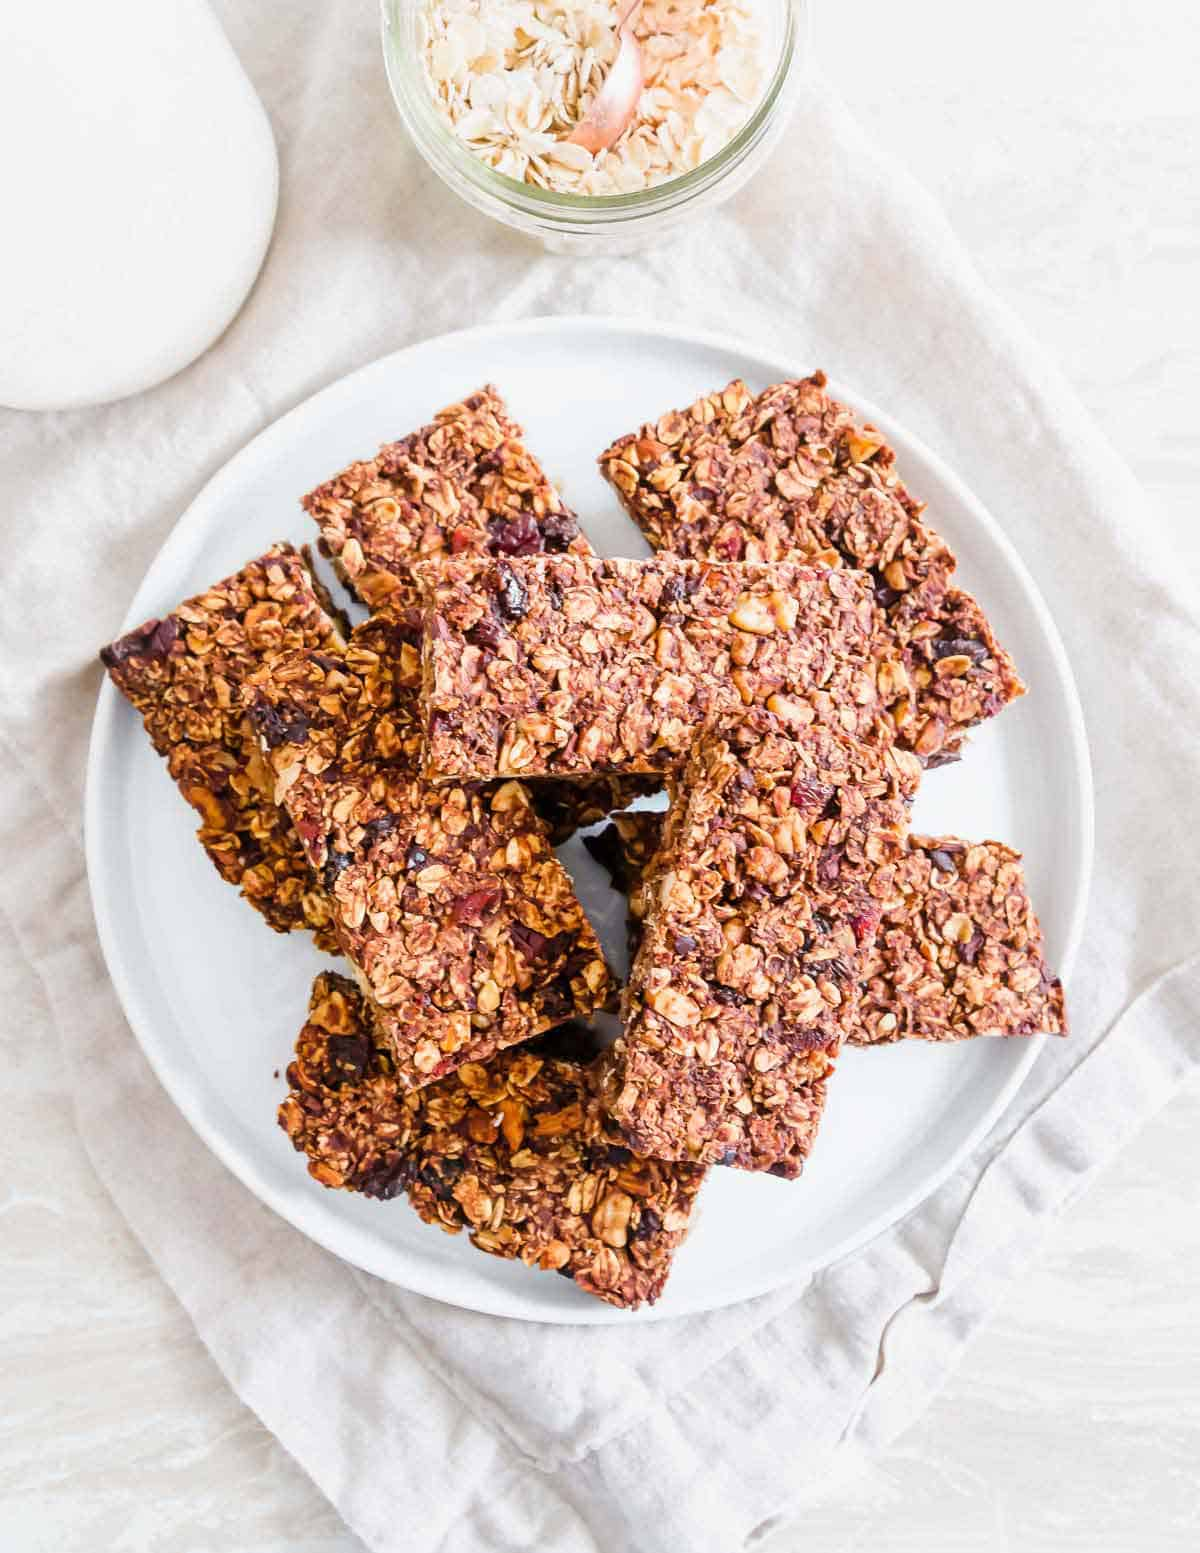 Customize this easy recipe for chocolate granola bars with your favorite nuts, fruit and add-ins for a healthy, delicious snack.